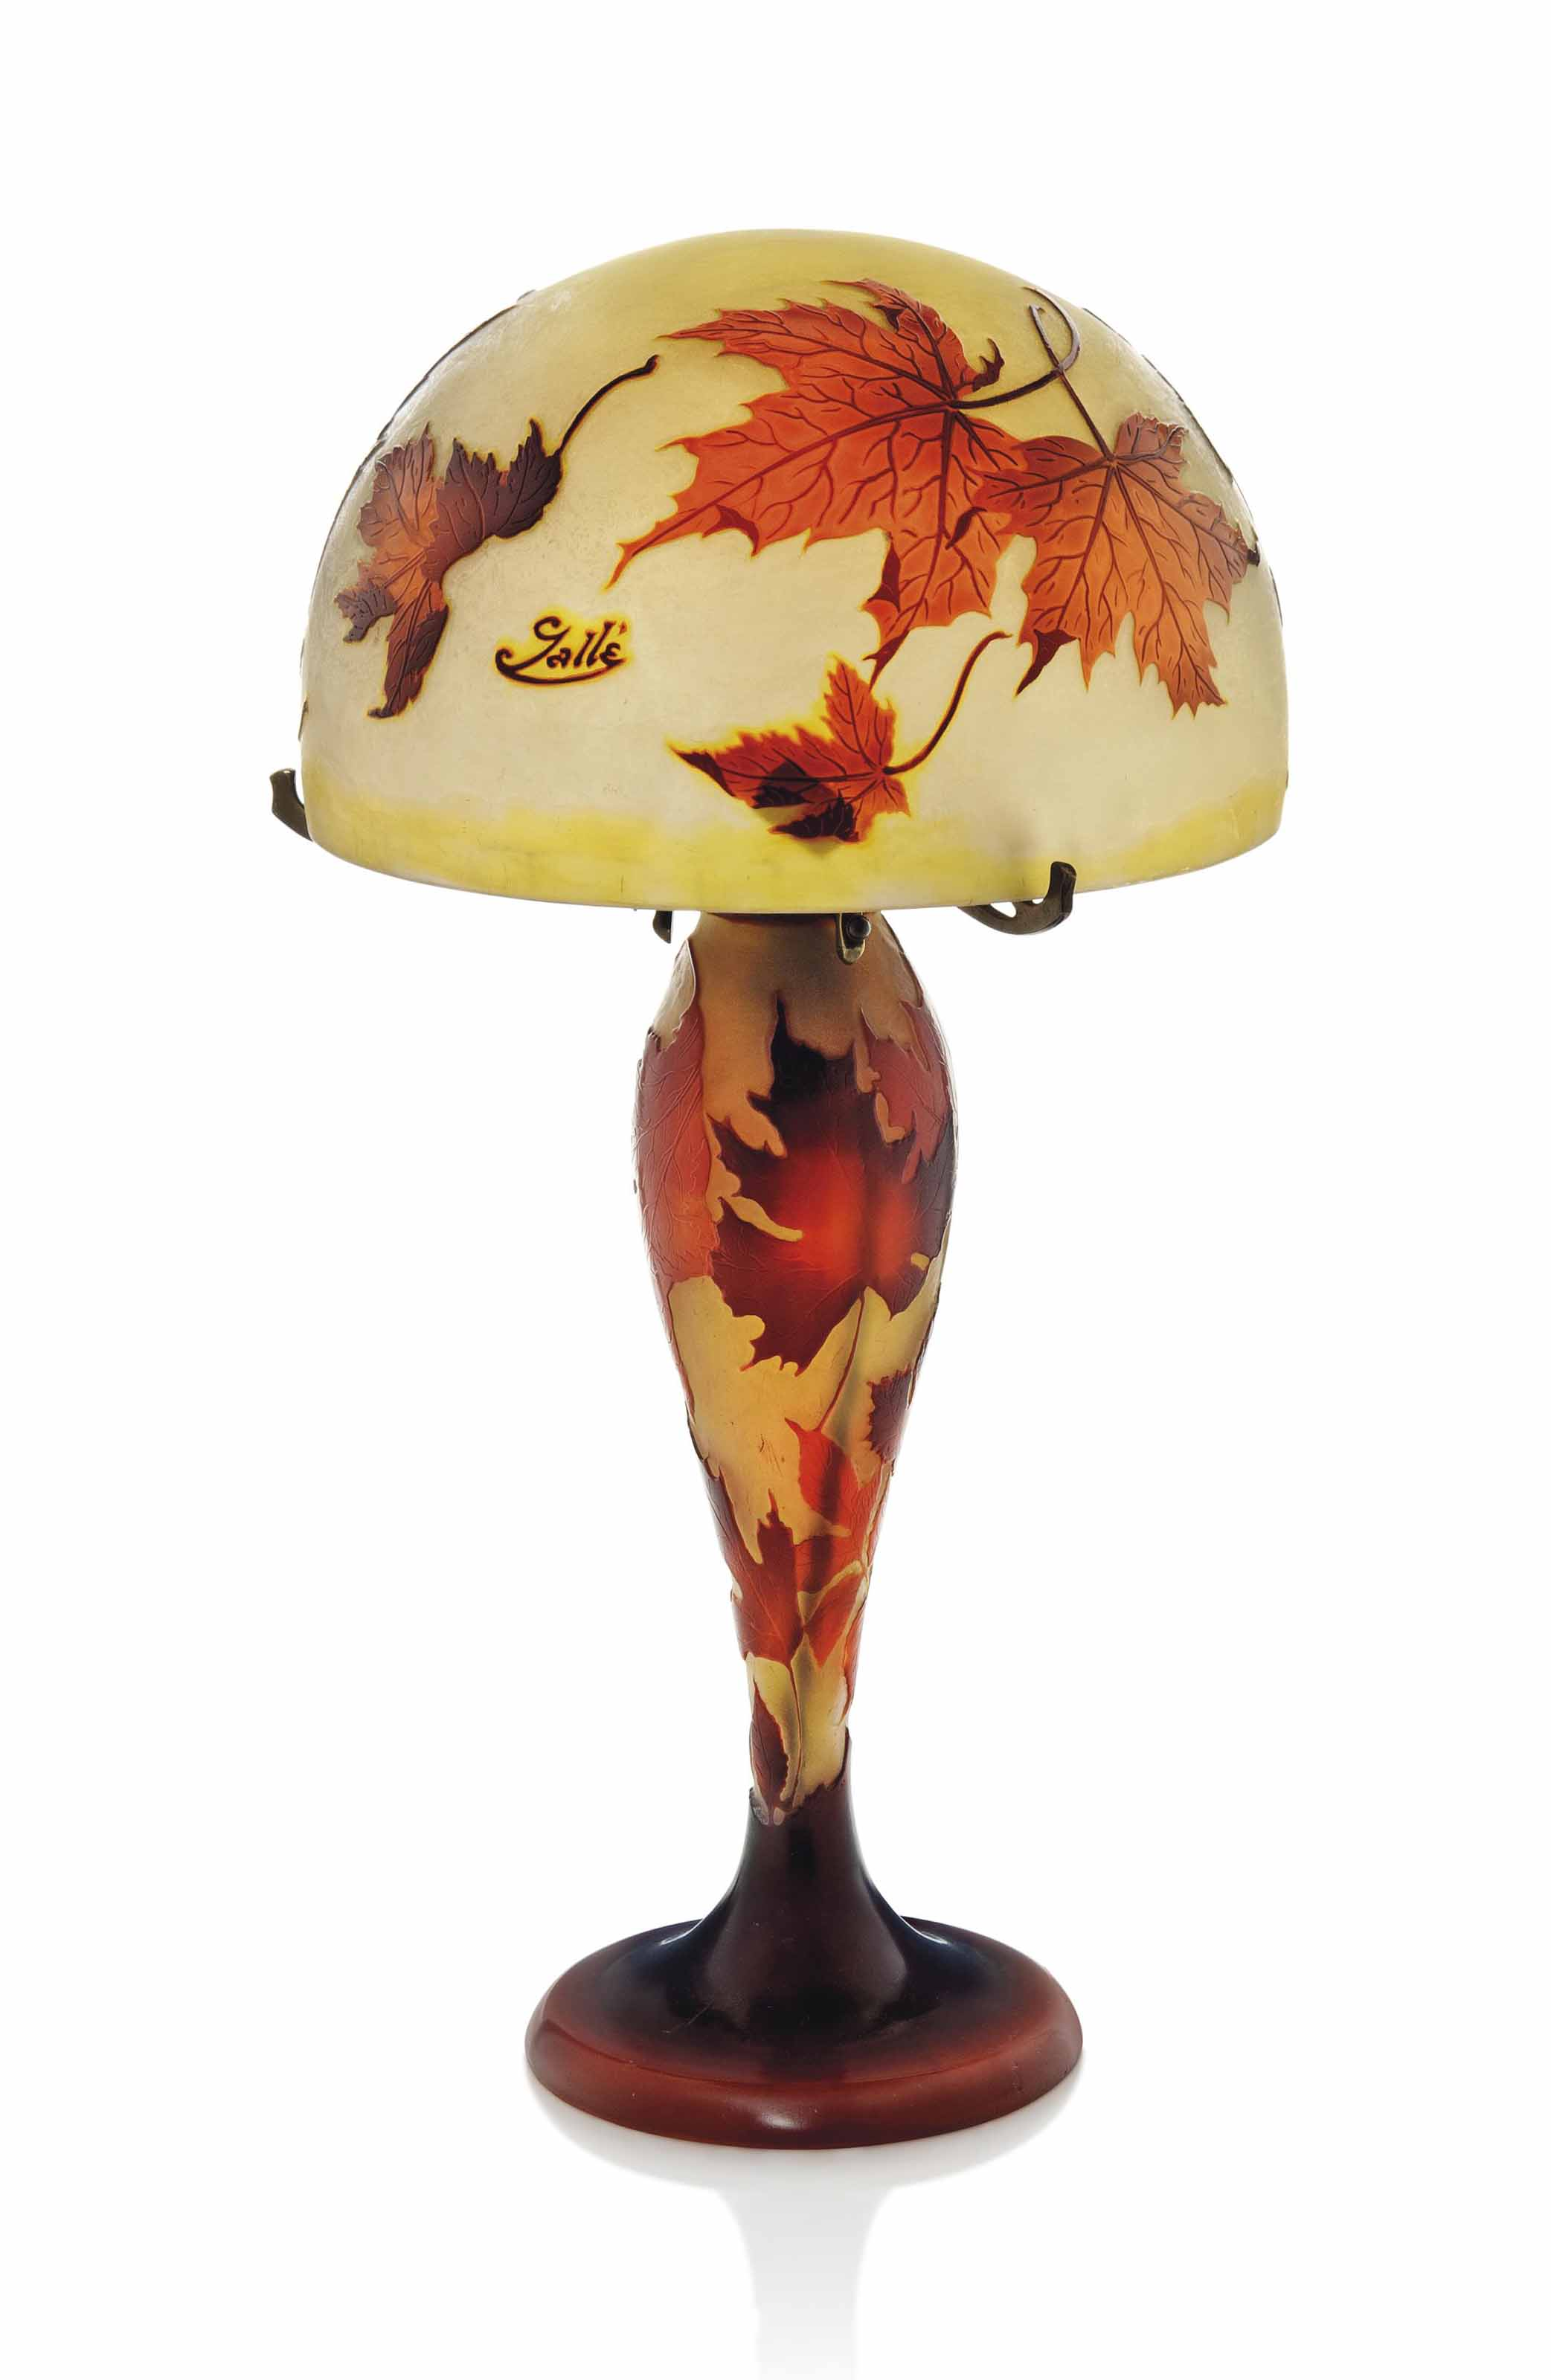 Cameo 1910sflowers Galle 1910 Gvb7fy6y Glass A Lampcirca Table n0OwNkX8P